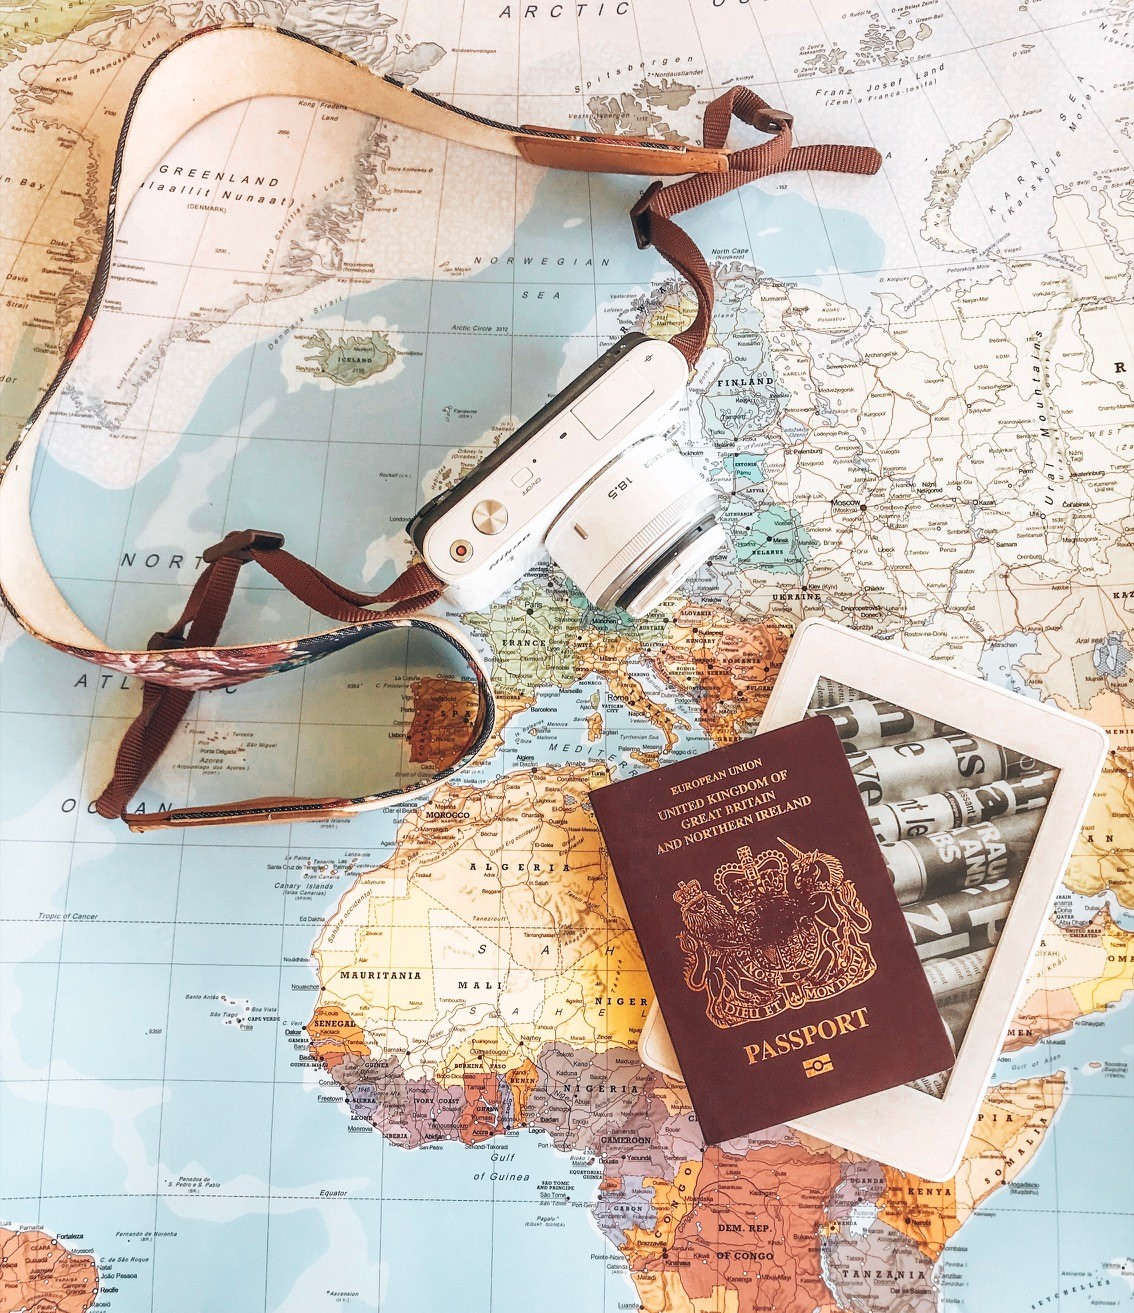 Planning Your Luxury Travel on a Budget - 10 Tips for stretching your holiday funds